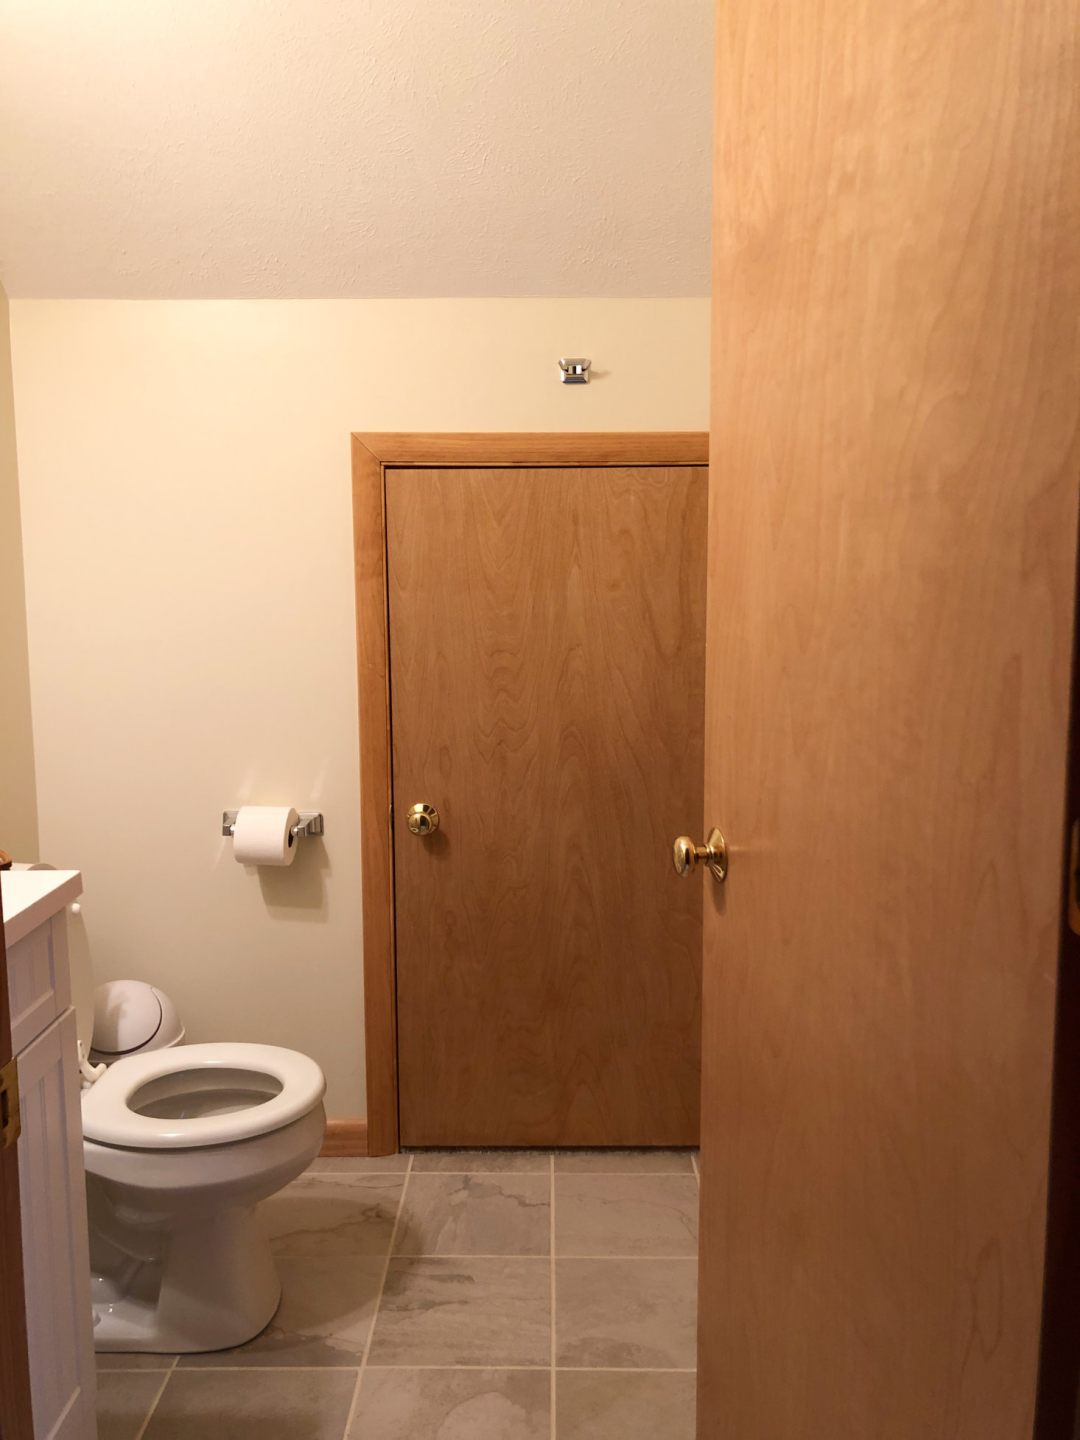 Small powder room with tiny door